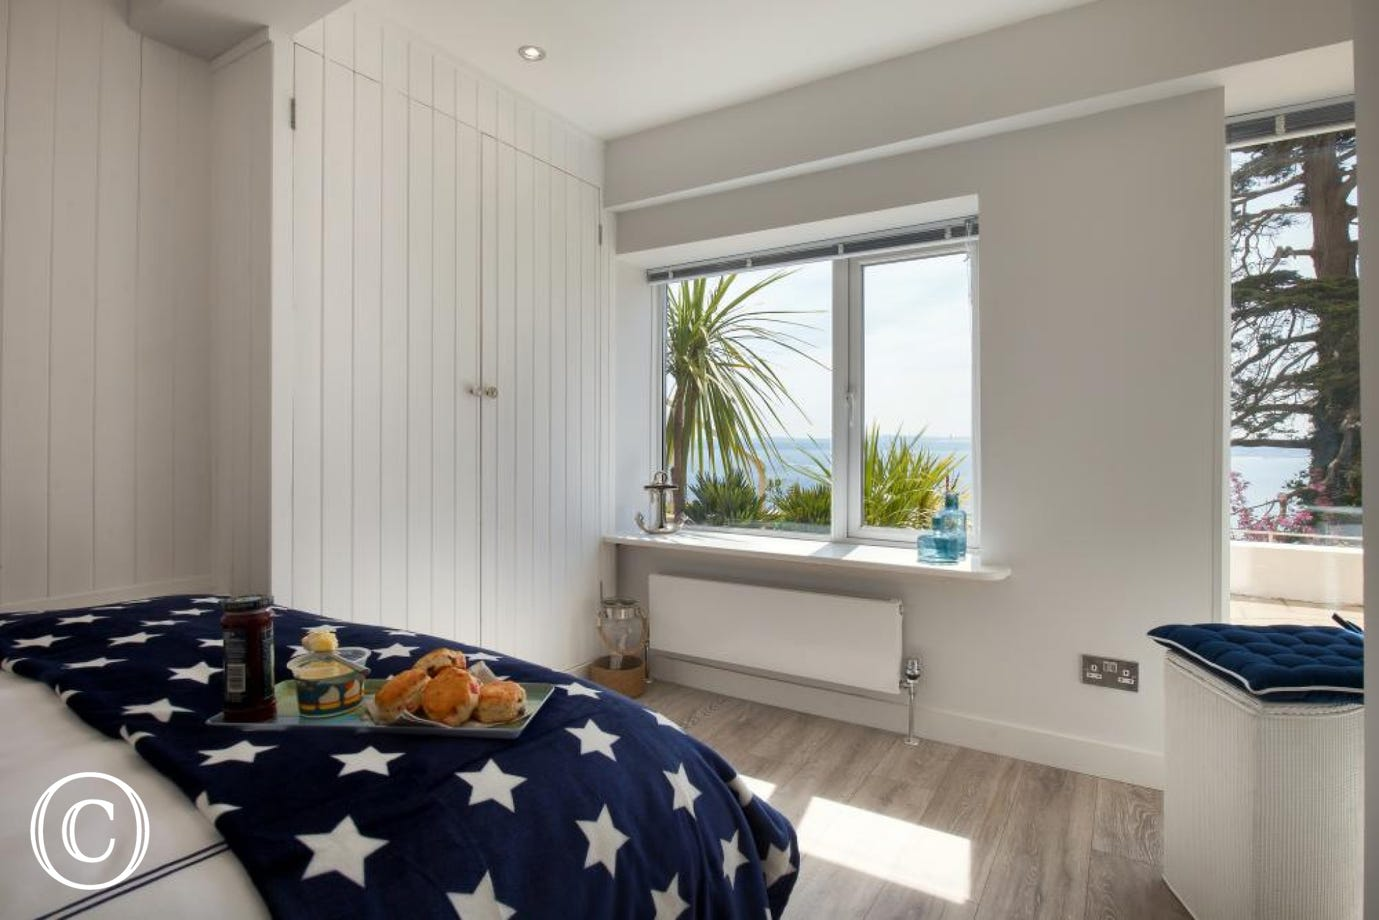 Sea Views from the Bedroom of this Self-Catering Apartment in Torquay, South Devon